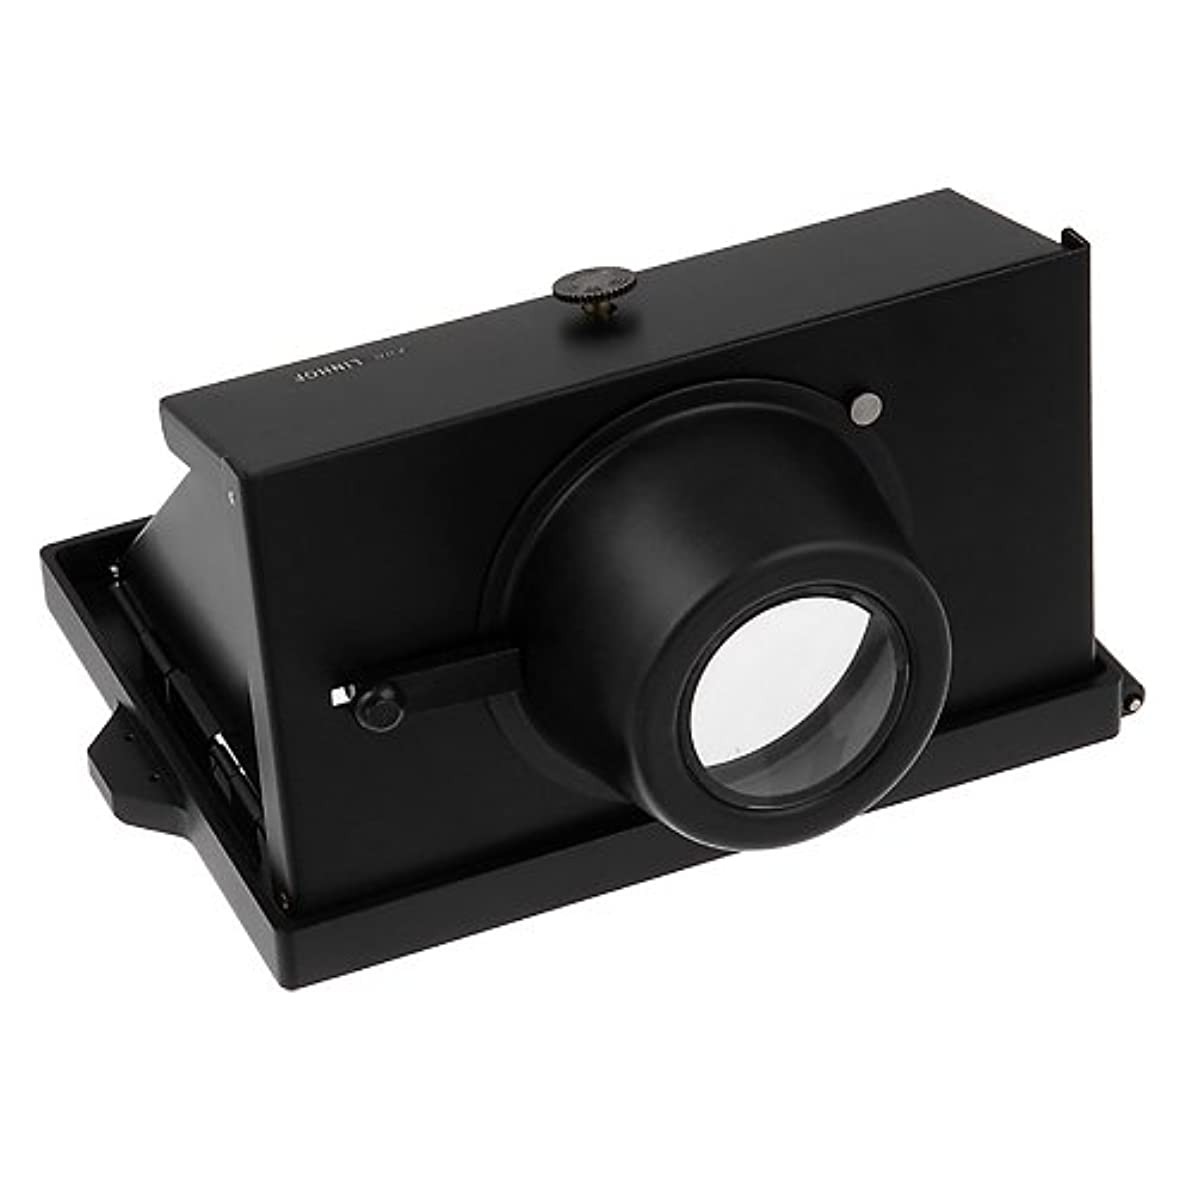 Fotodiox Pro Right Angle View Finder Hood, for 4x5 Field Camera, fits Linhof 4x5 View Camera -- Right Angle Mirror Viewfinder with Magnifying Eyepiece, Linhof Master Technika